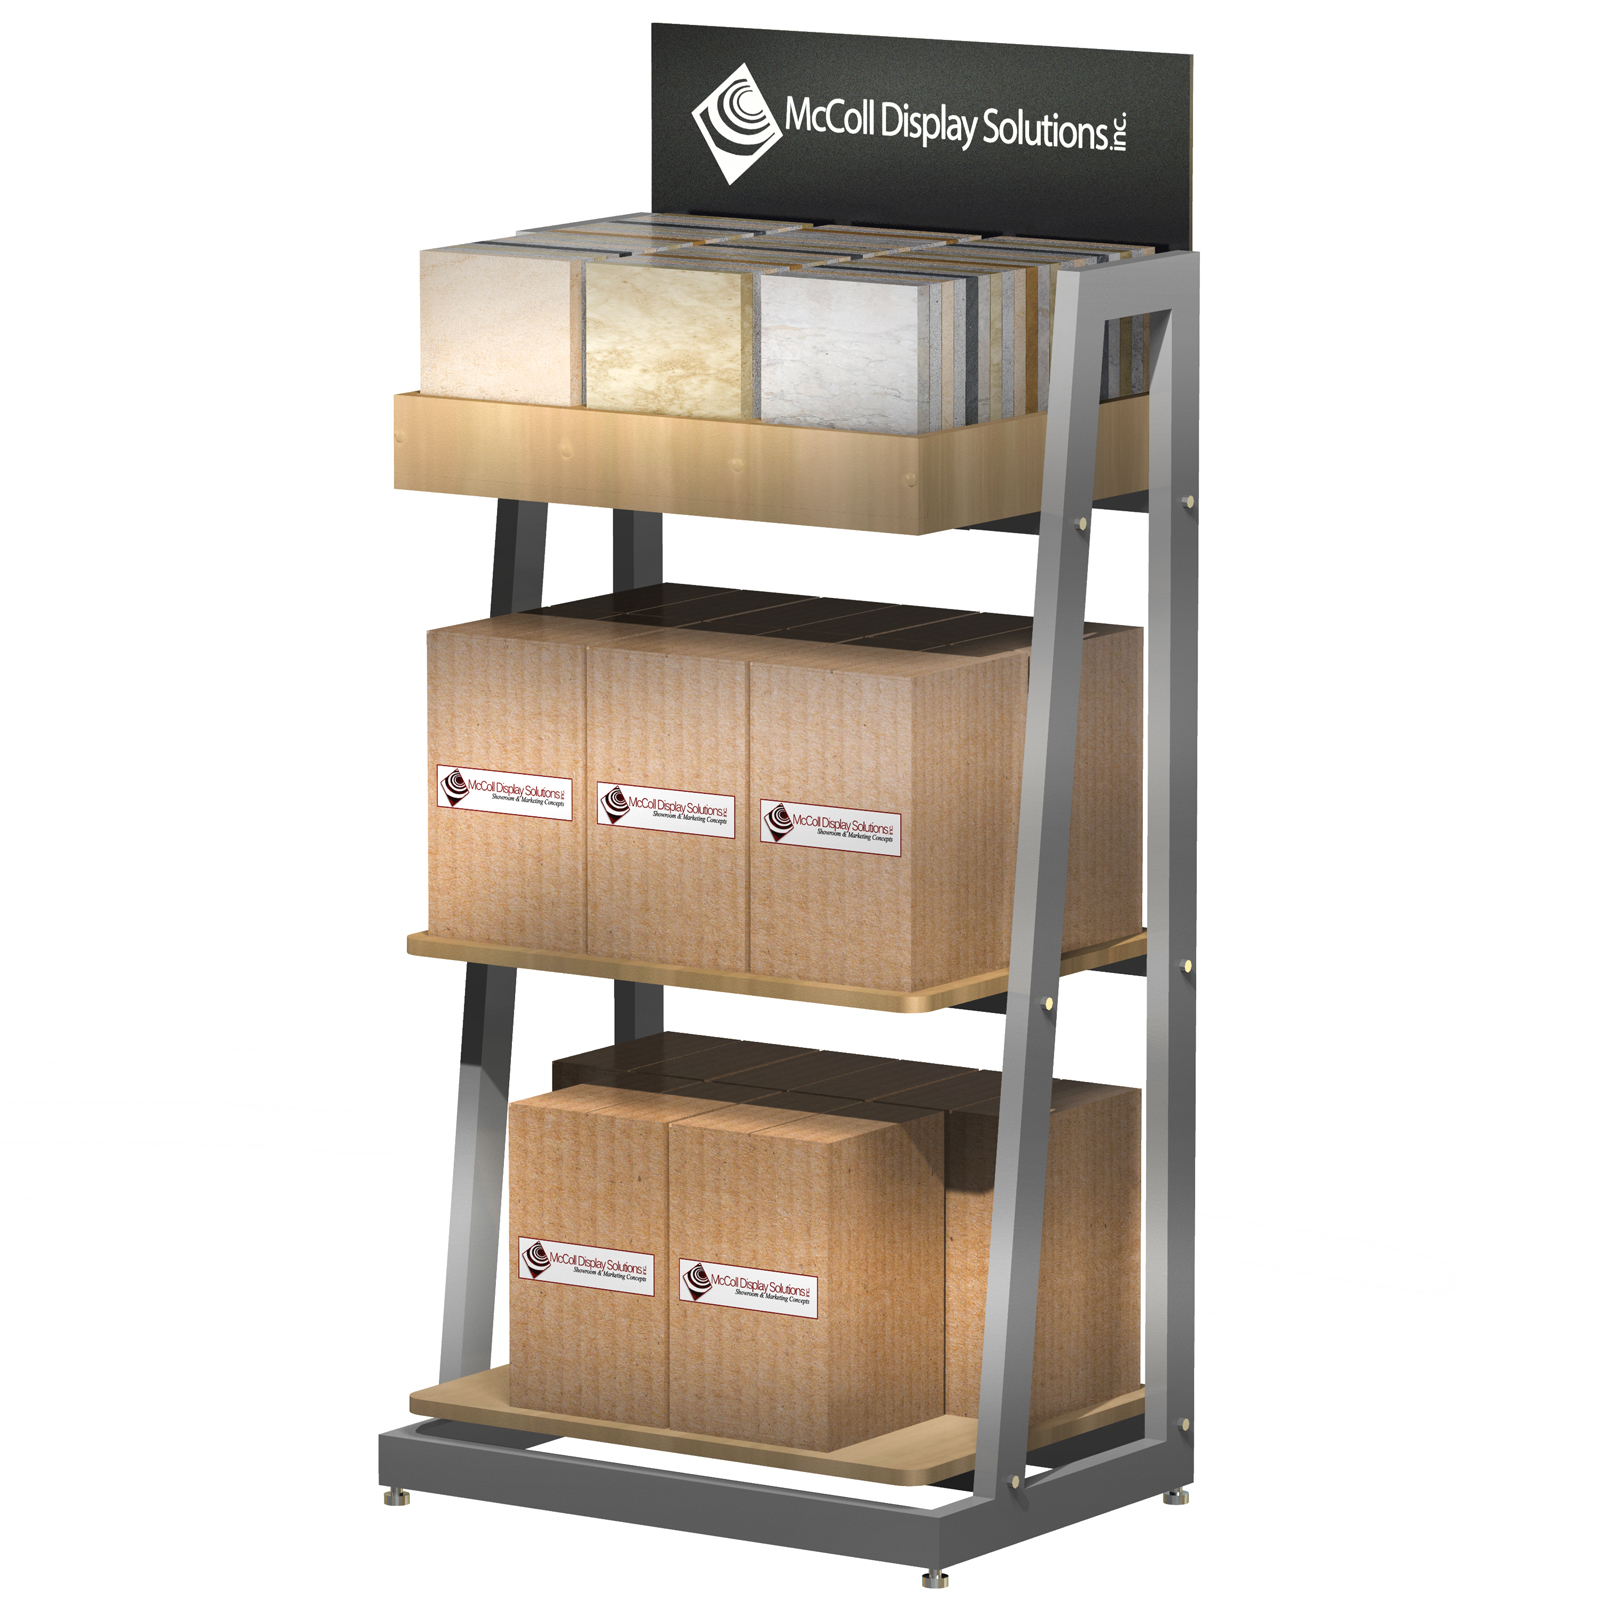 CD88 Easy Customize Point of Purchase Retail Store Fixture Shelf System Tower Aisle End Cap Flooring Samples or Accessory with Screen Printed Sign Made in USA